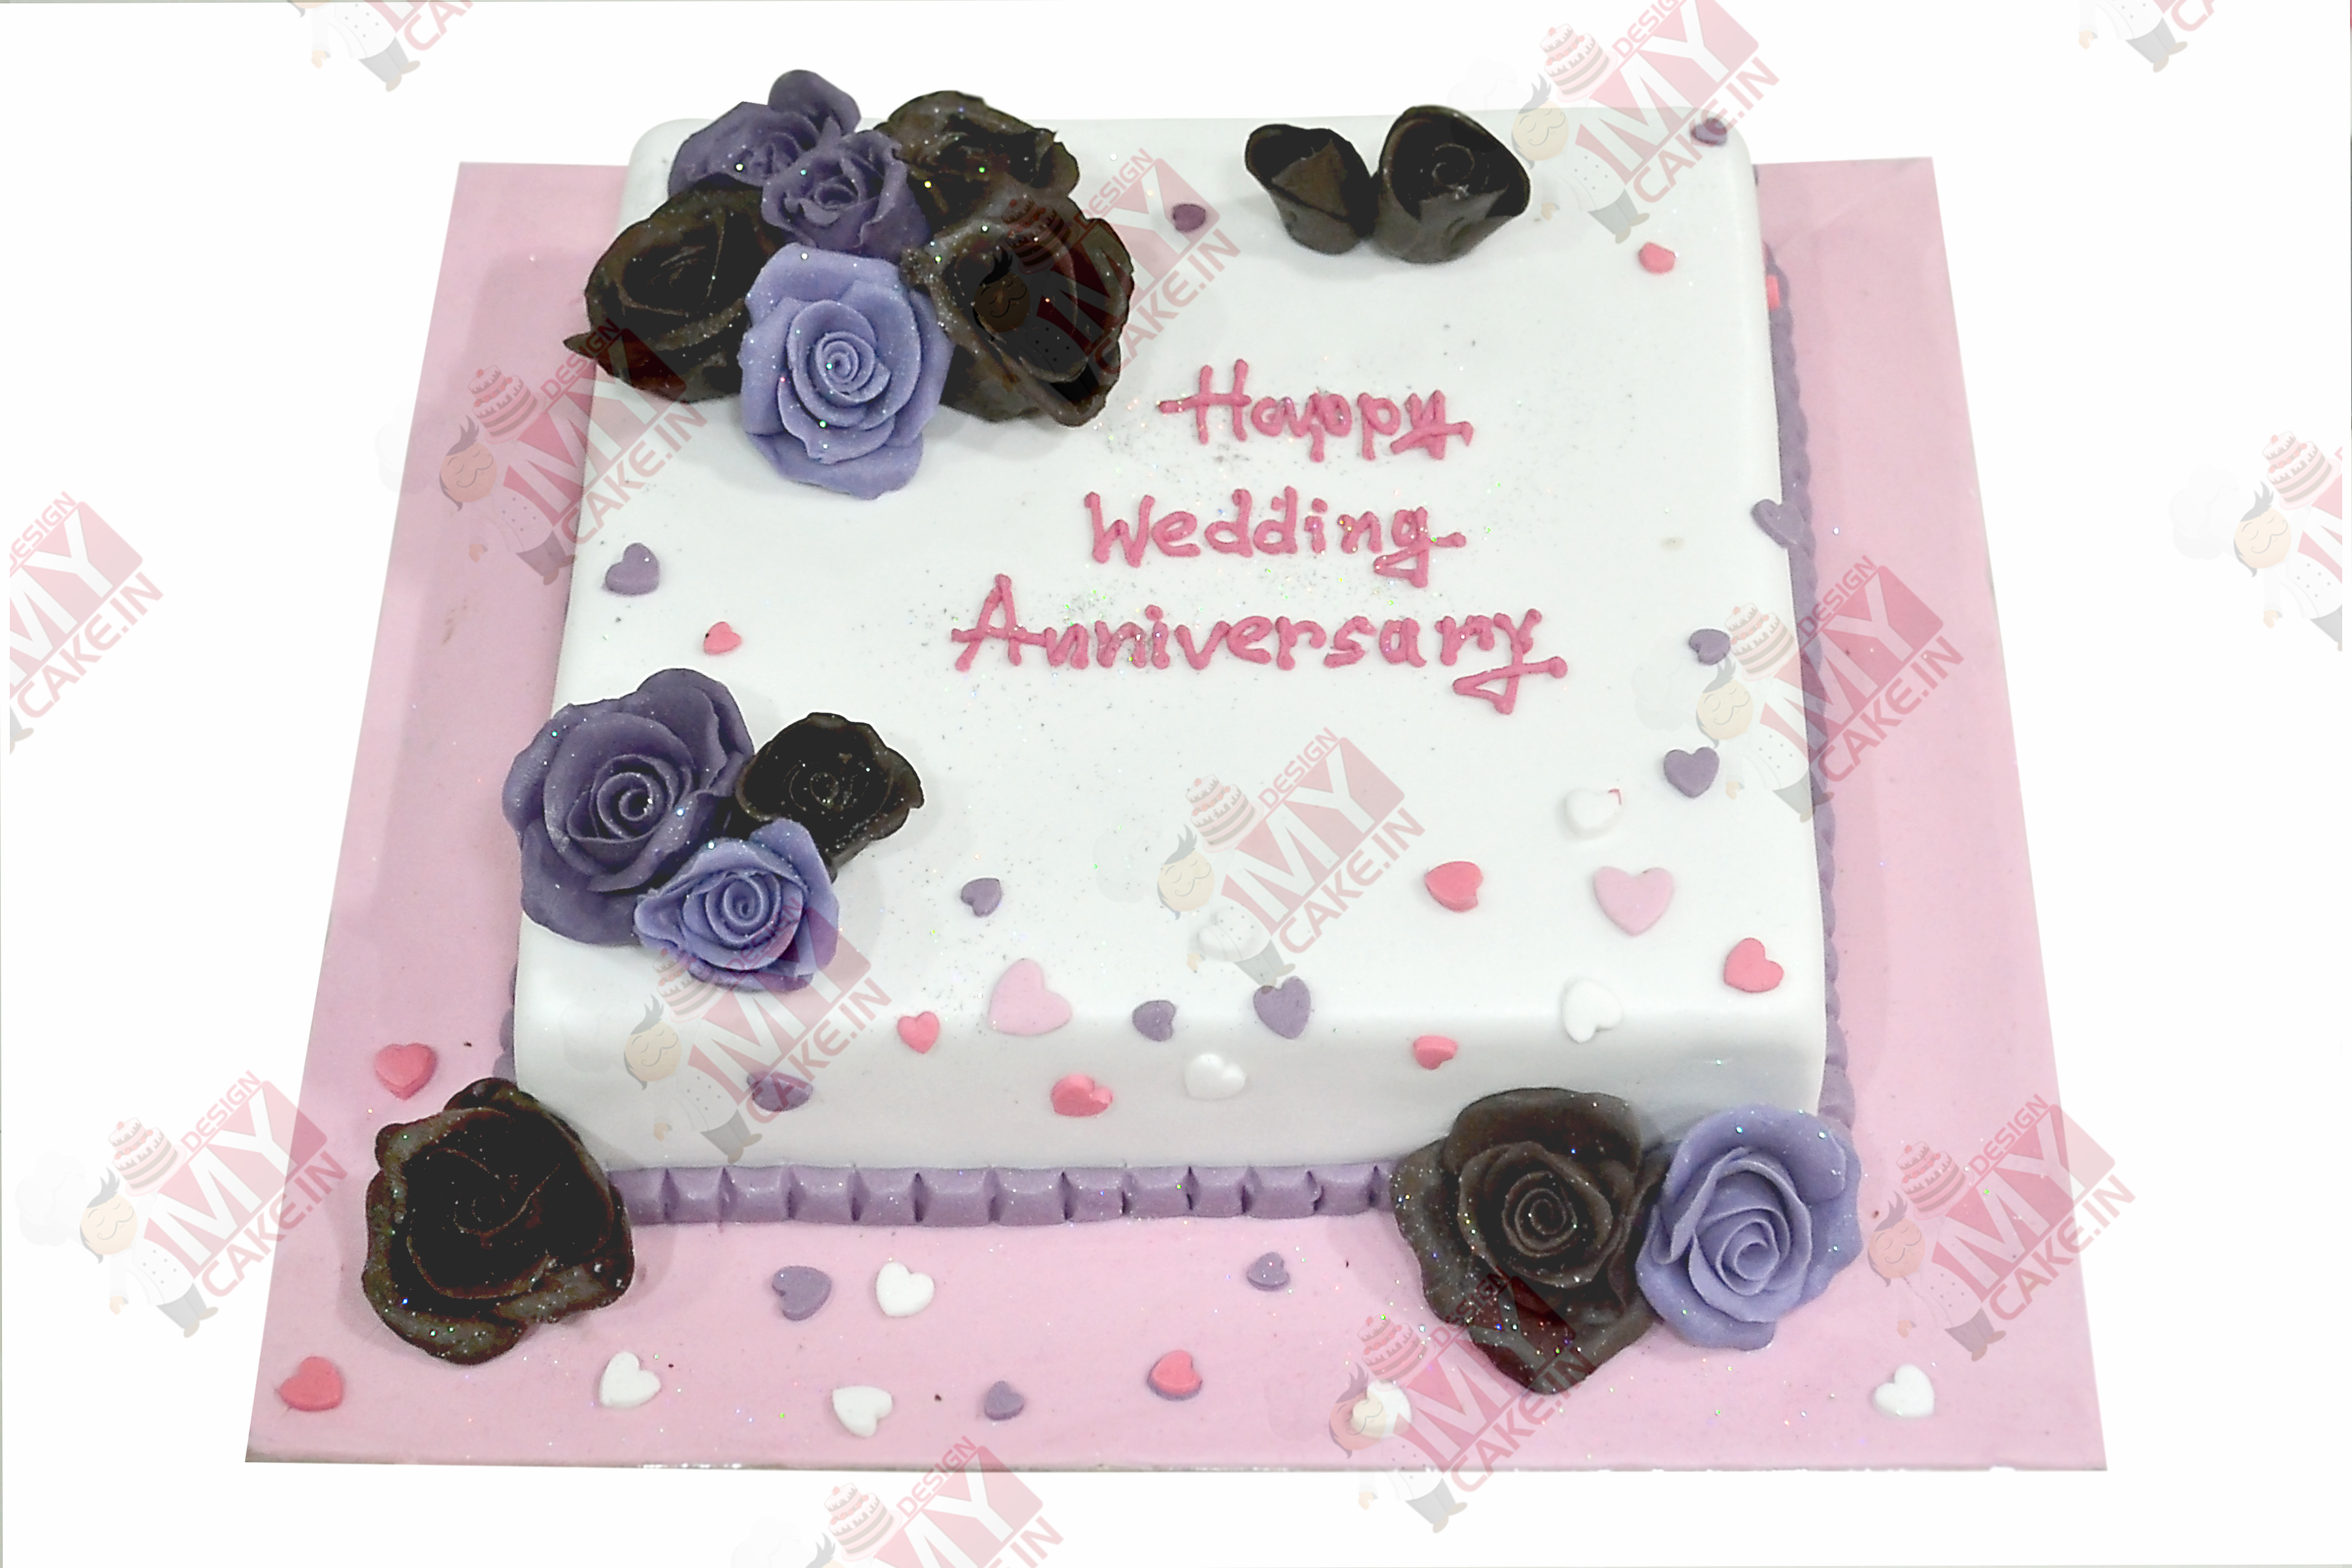 Send Anniversary Cakes Online in Kolkata - Design My Cake